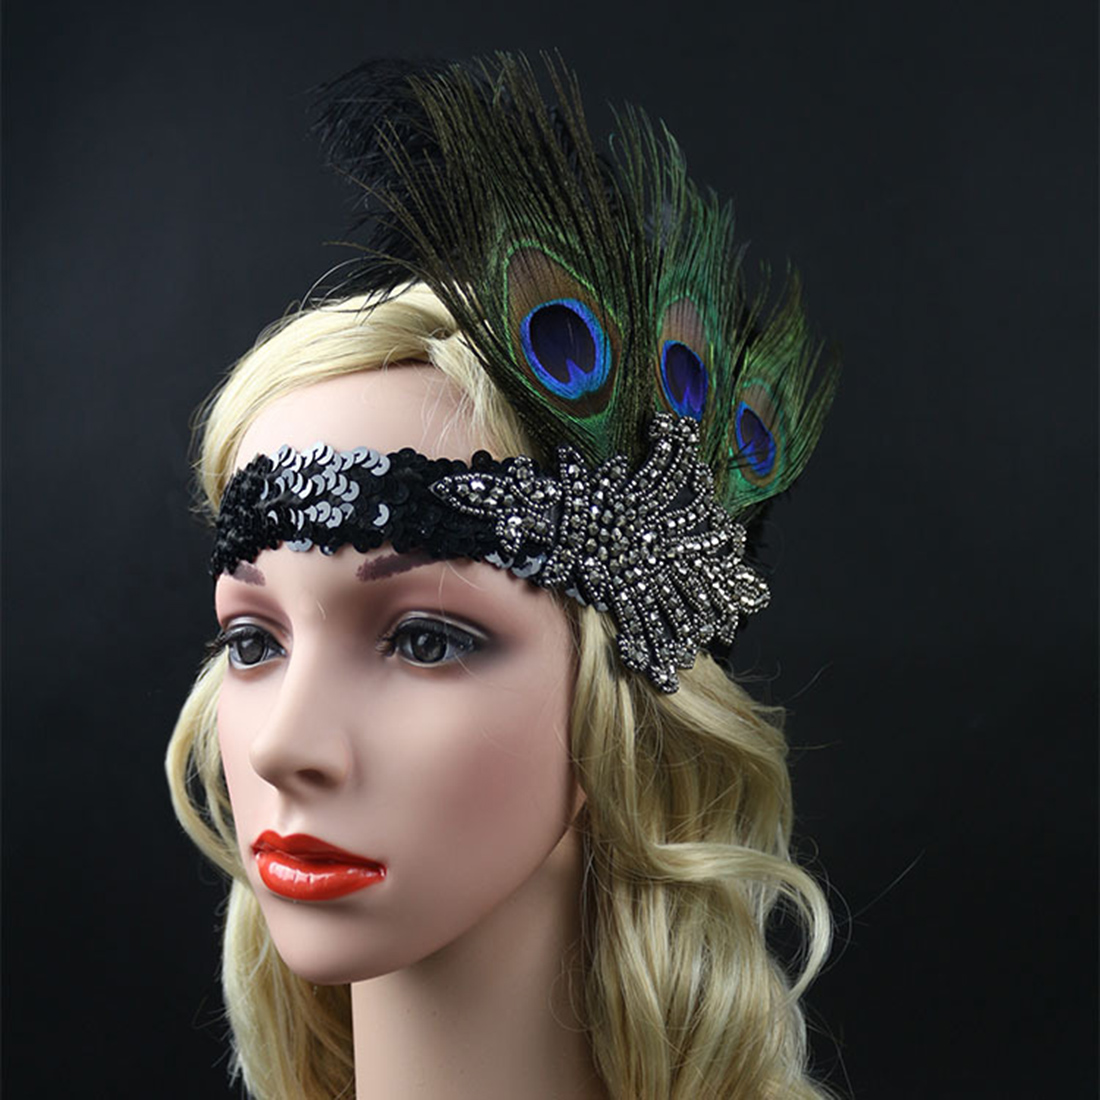 Hair Accessories Black Rhinestone Beaded Sequin Hair band 1920s Vintage Gatsby Party Headpiece Women Flapper Feather Headband